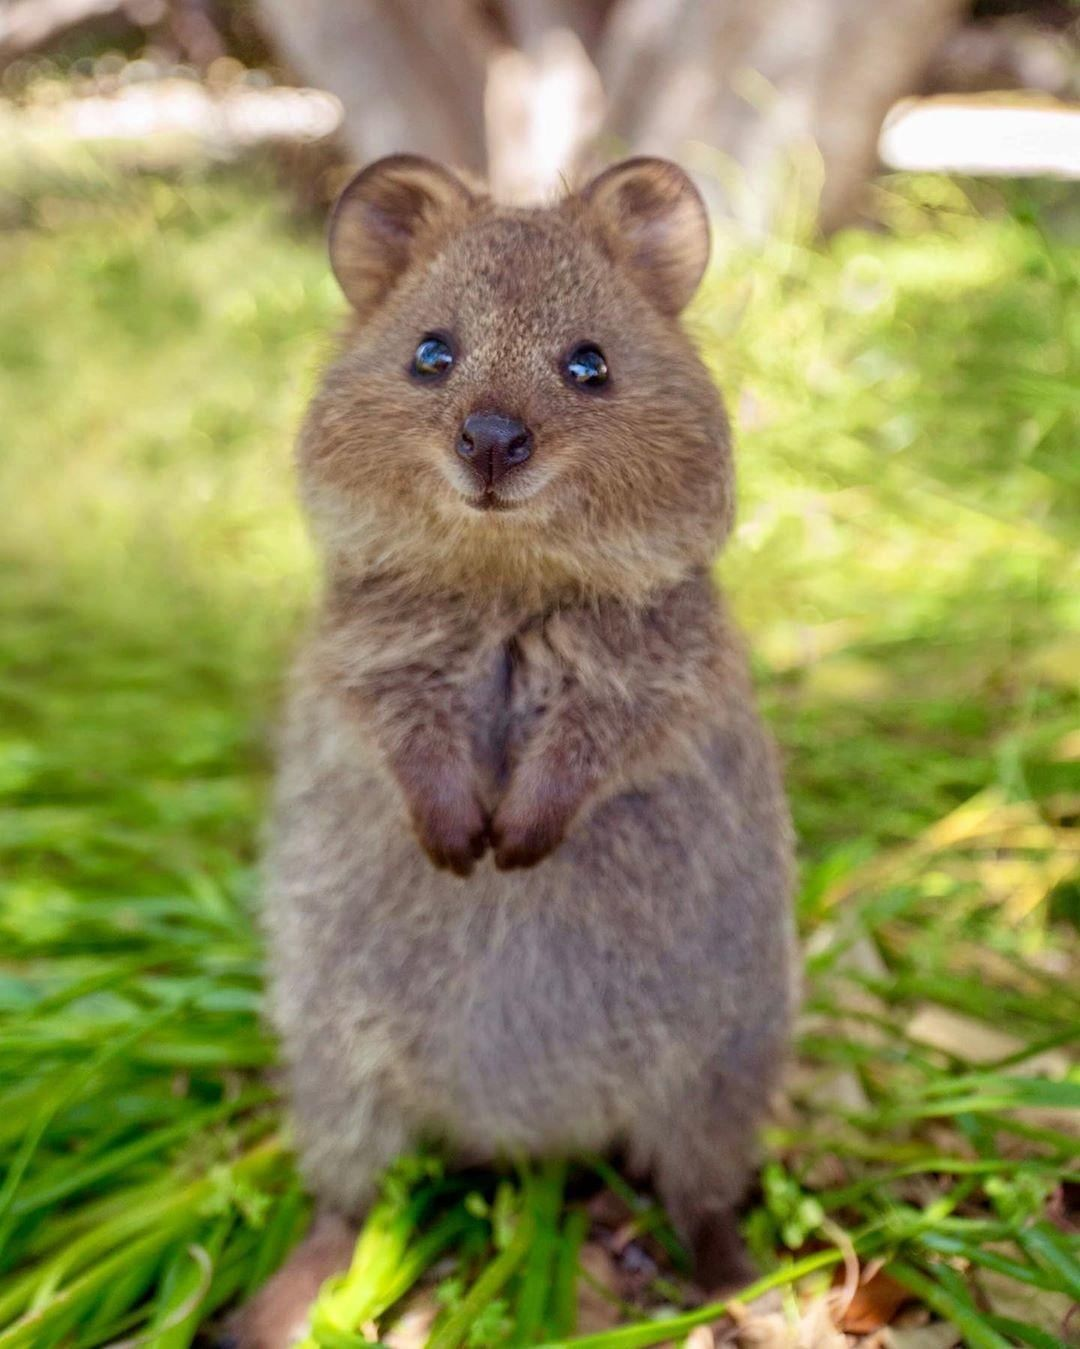 Isn T This The Cutest Thing You Ve Seen On The Internet Today Paws Up If It Is We Quokka N T Handle Just How Cute This In 2020 Cute Animals